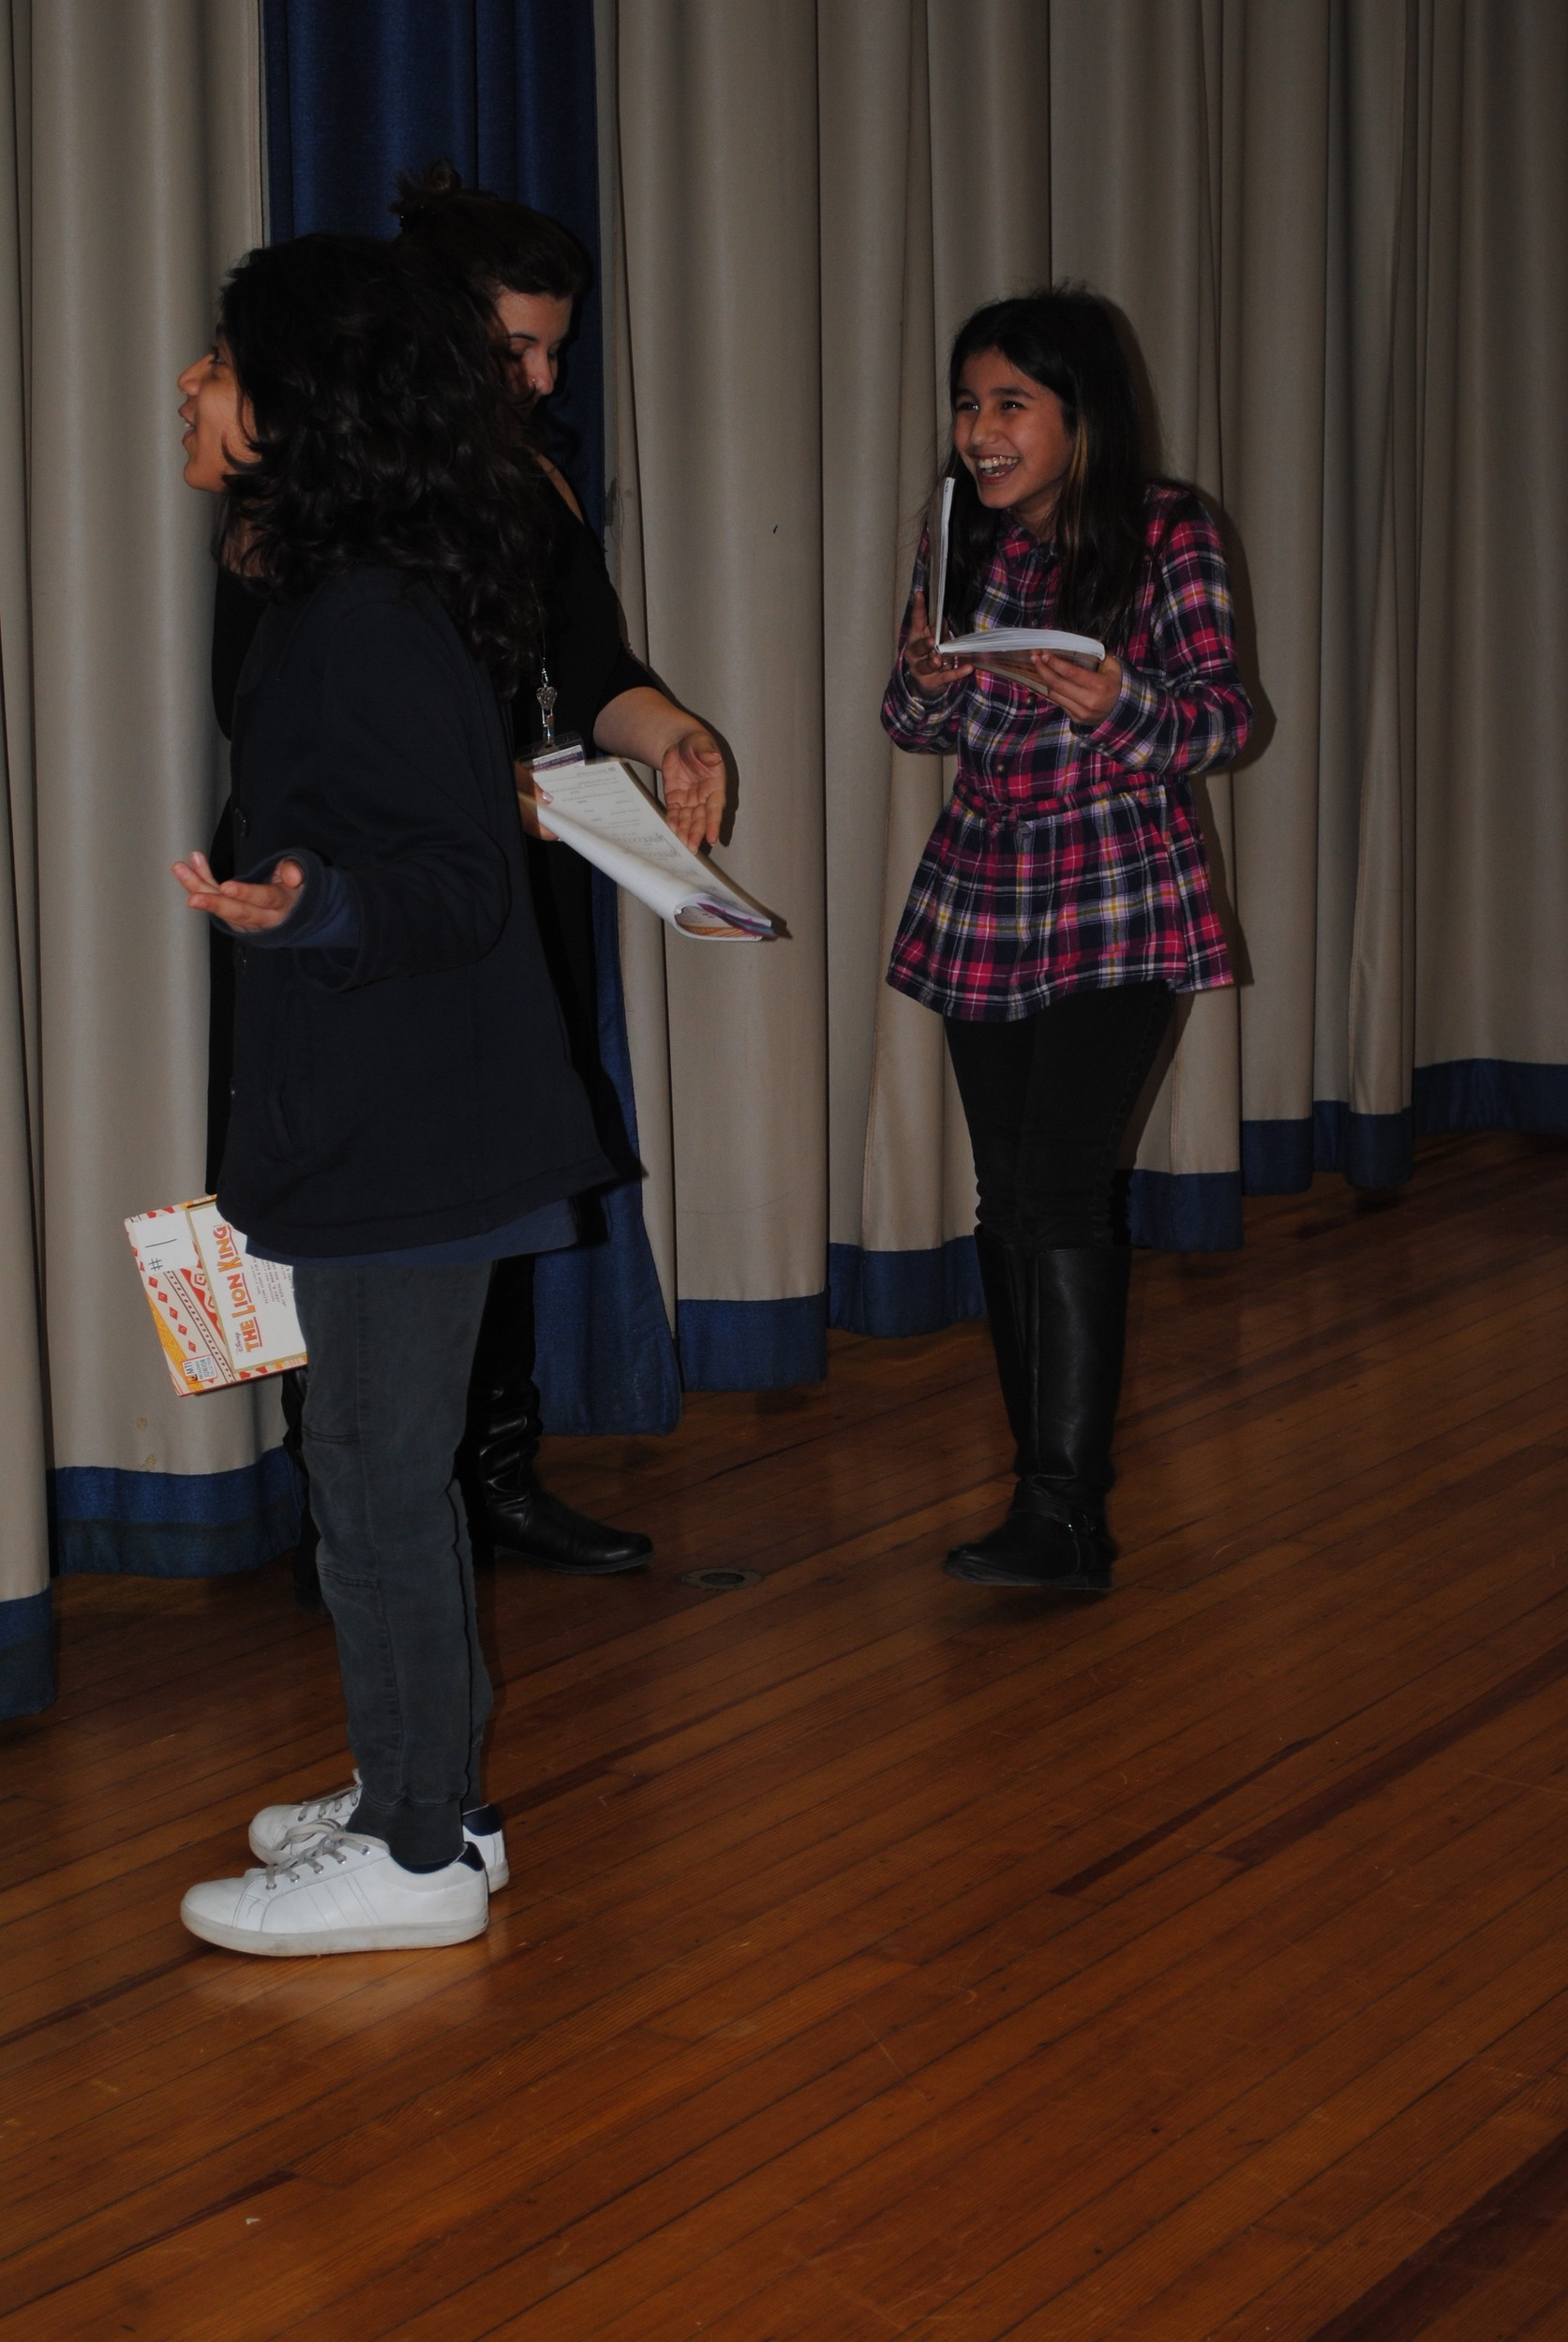 Jaiya Chetram, left, and Valerie Cotto, while playing adult Simba and Nala, broke character during a rehearsal.